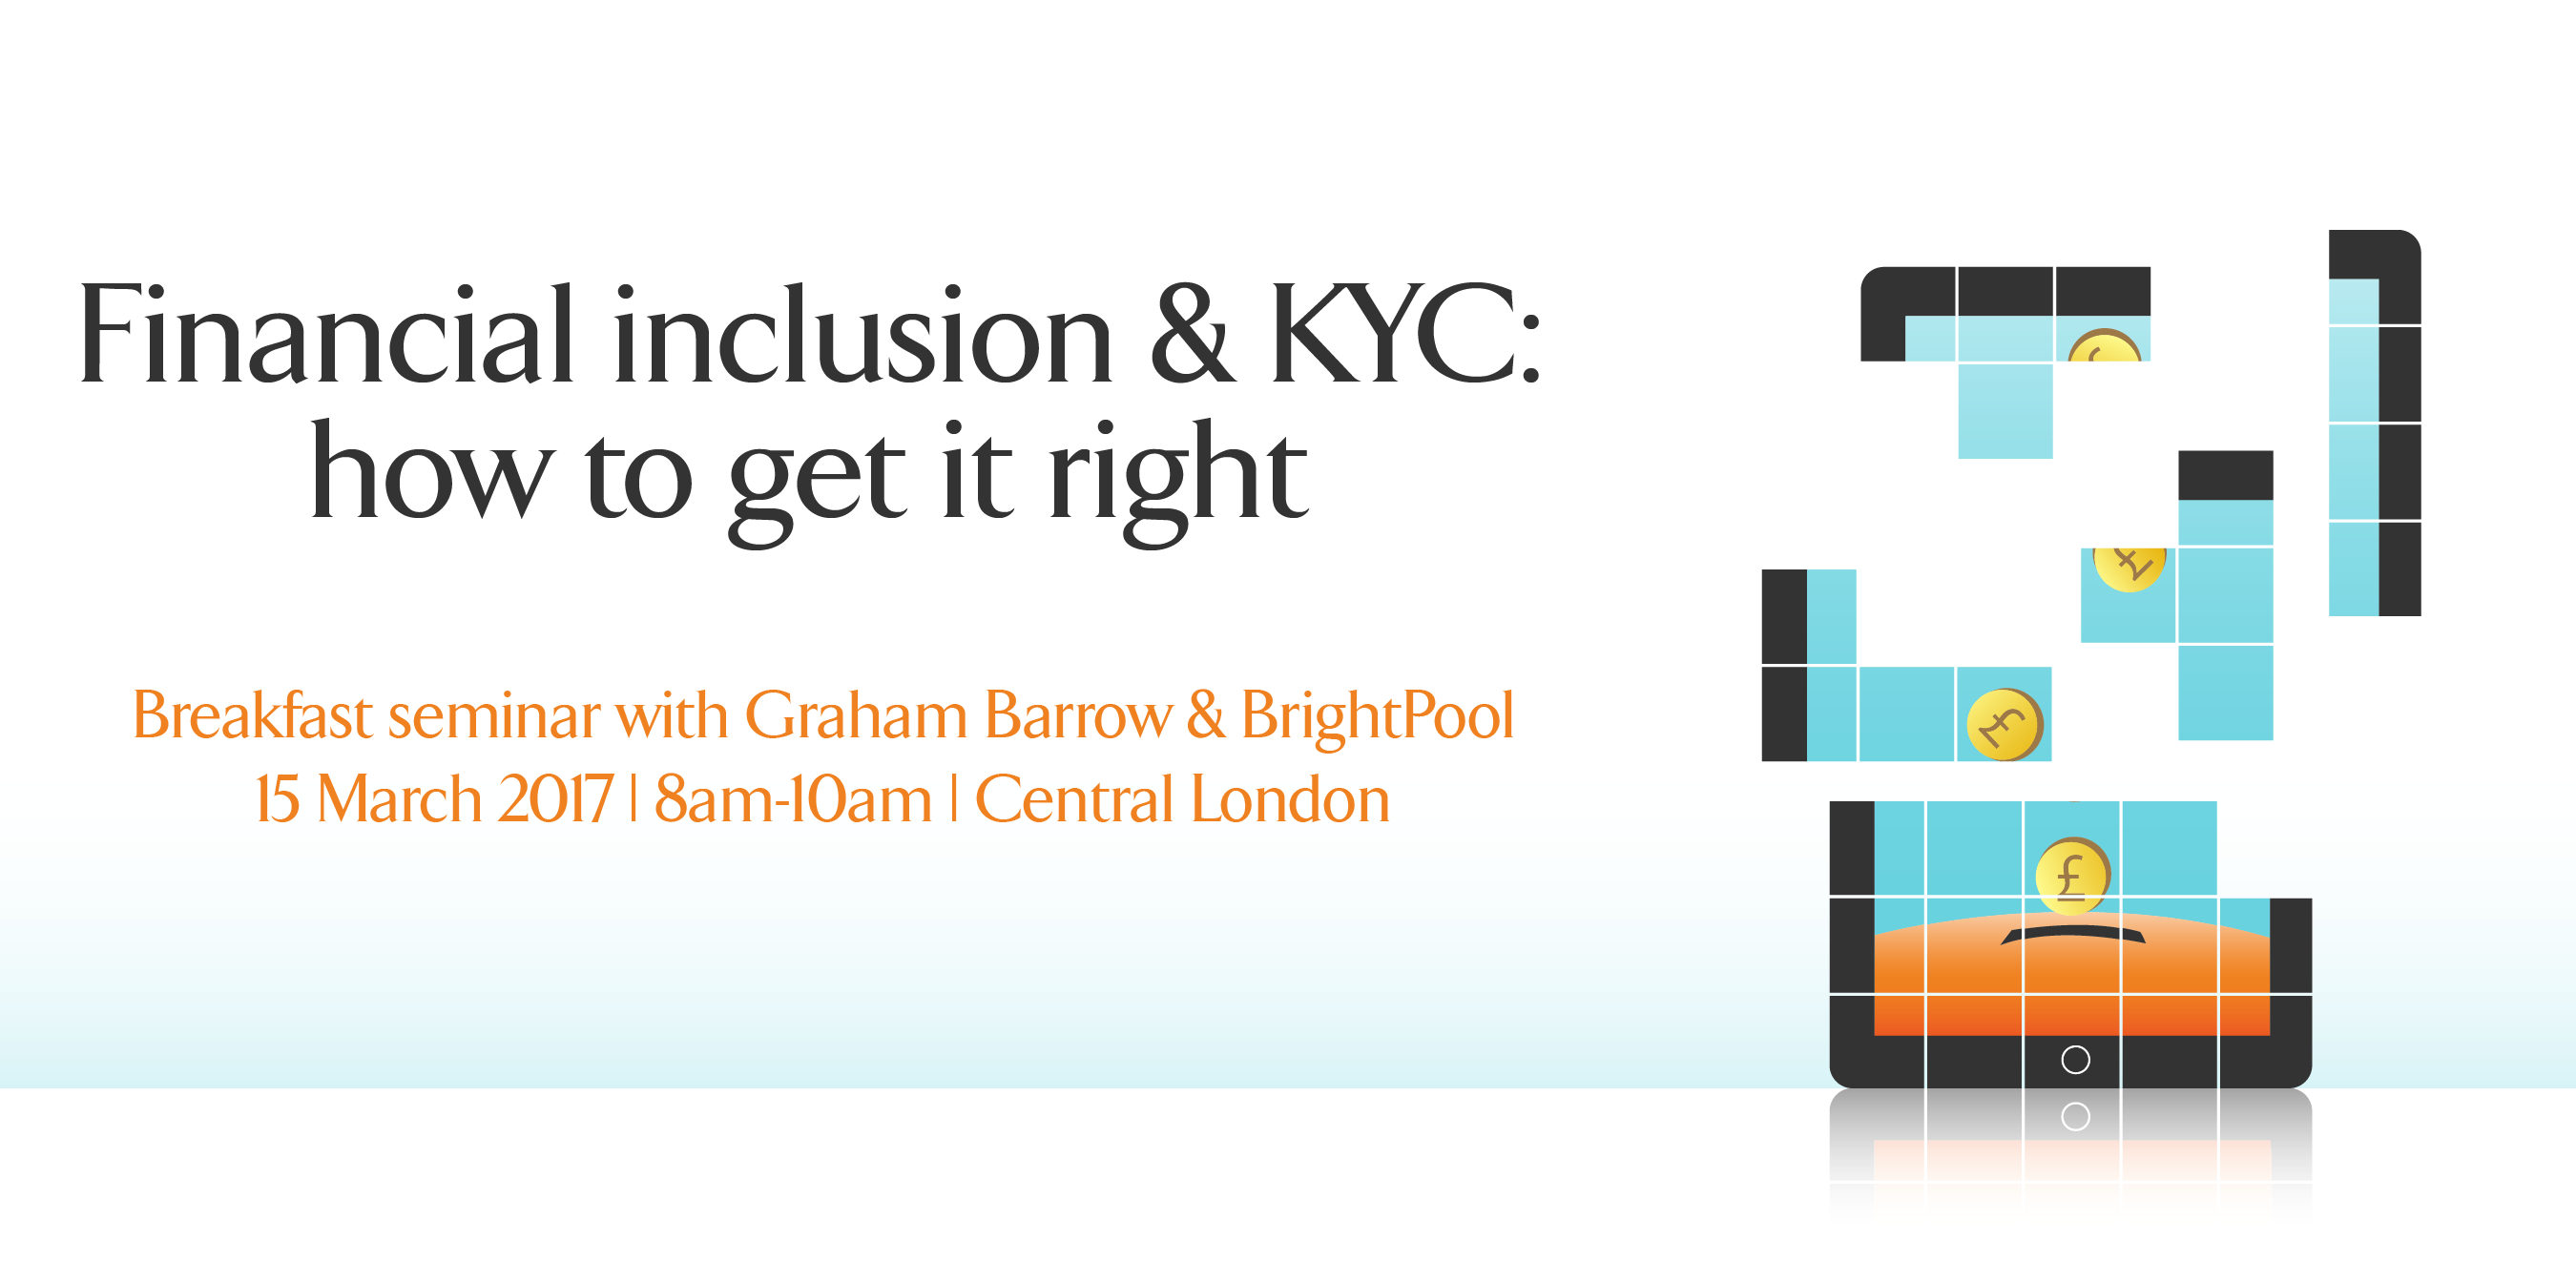 Financial inclusion & KYC: how to get it right - New Street Group